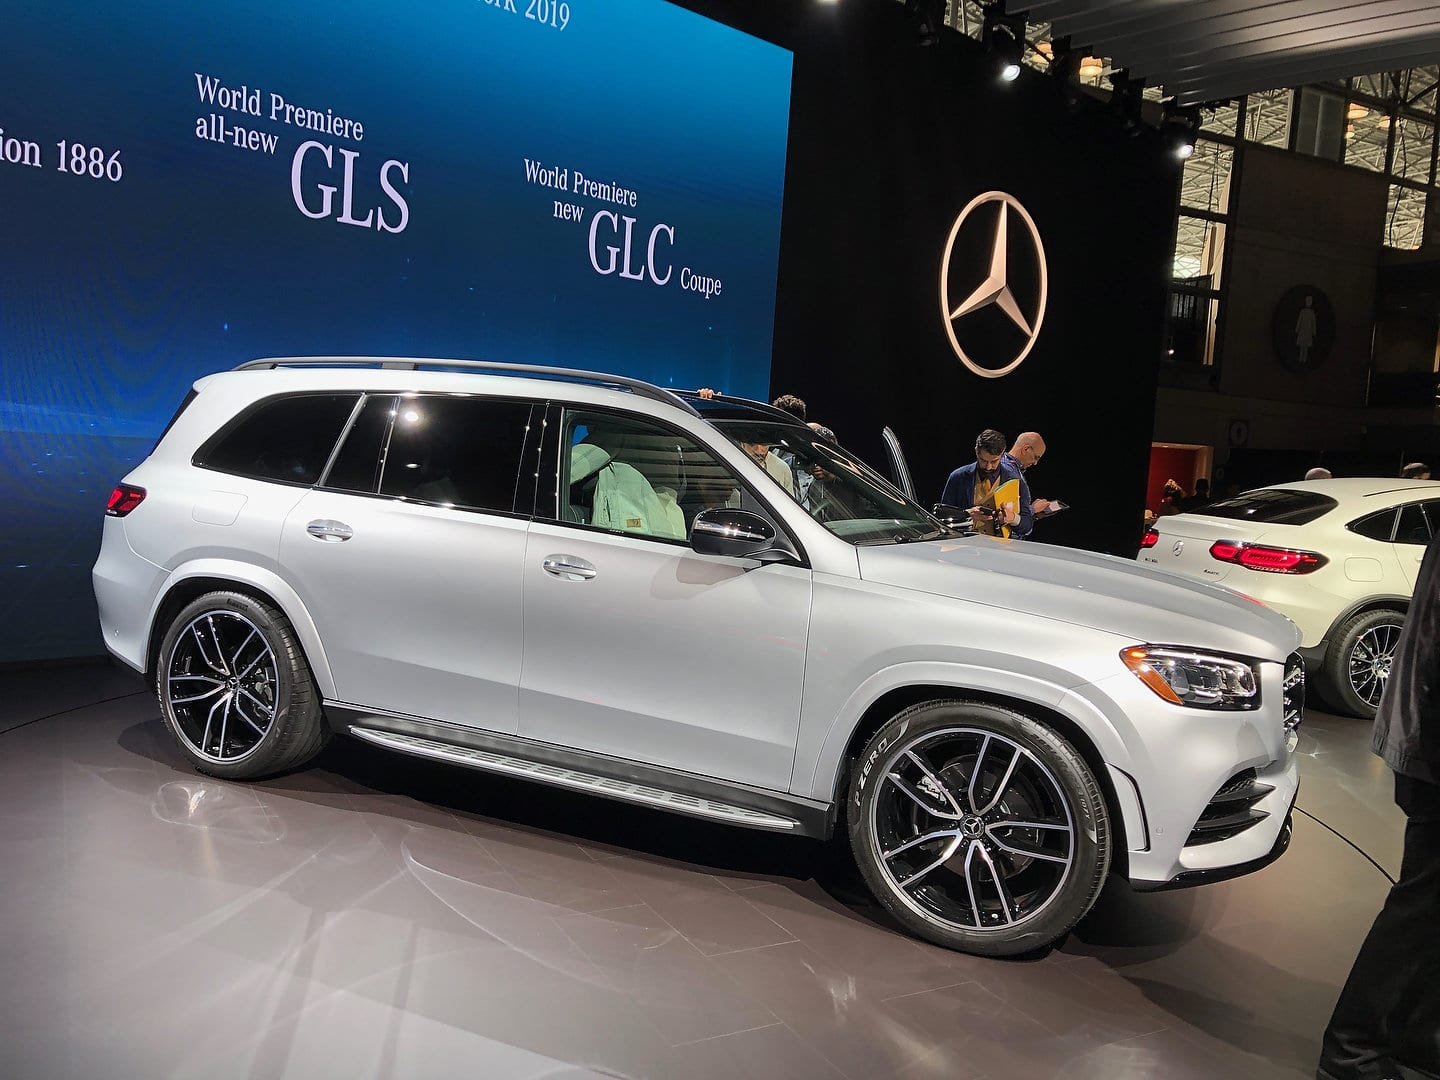 New 2020 Mercedes Benz Gls Is Now More Than Ever The S Class Of Suvs Motor Illustrated